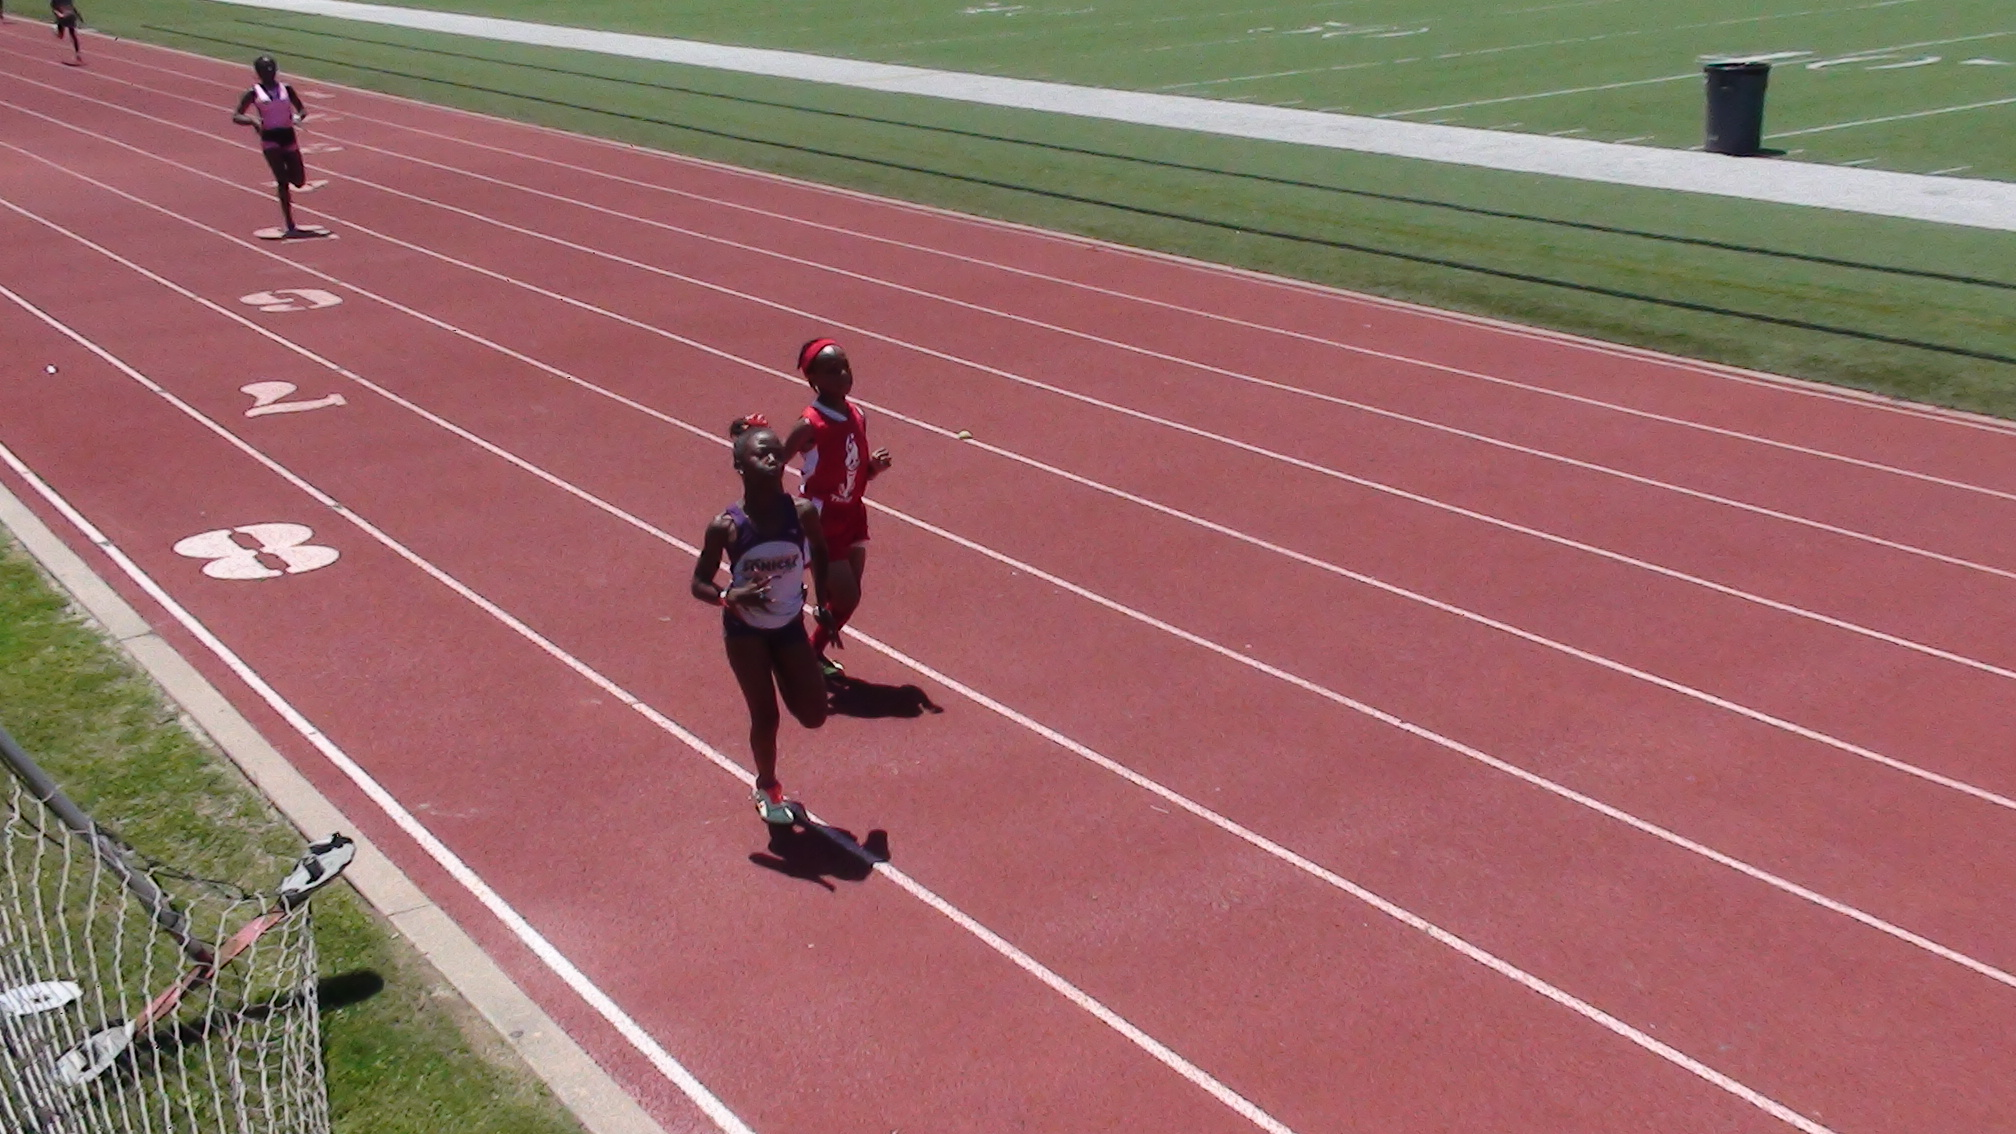 Cesley running the 400